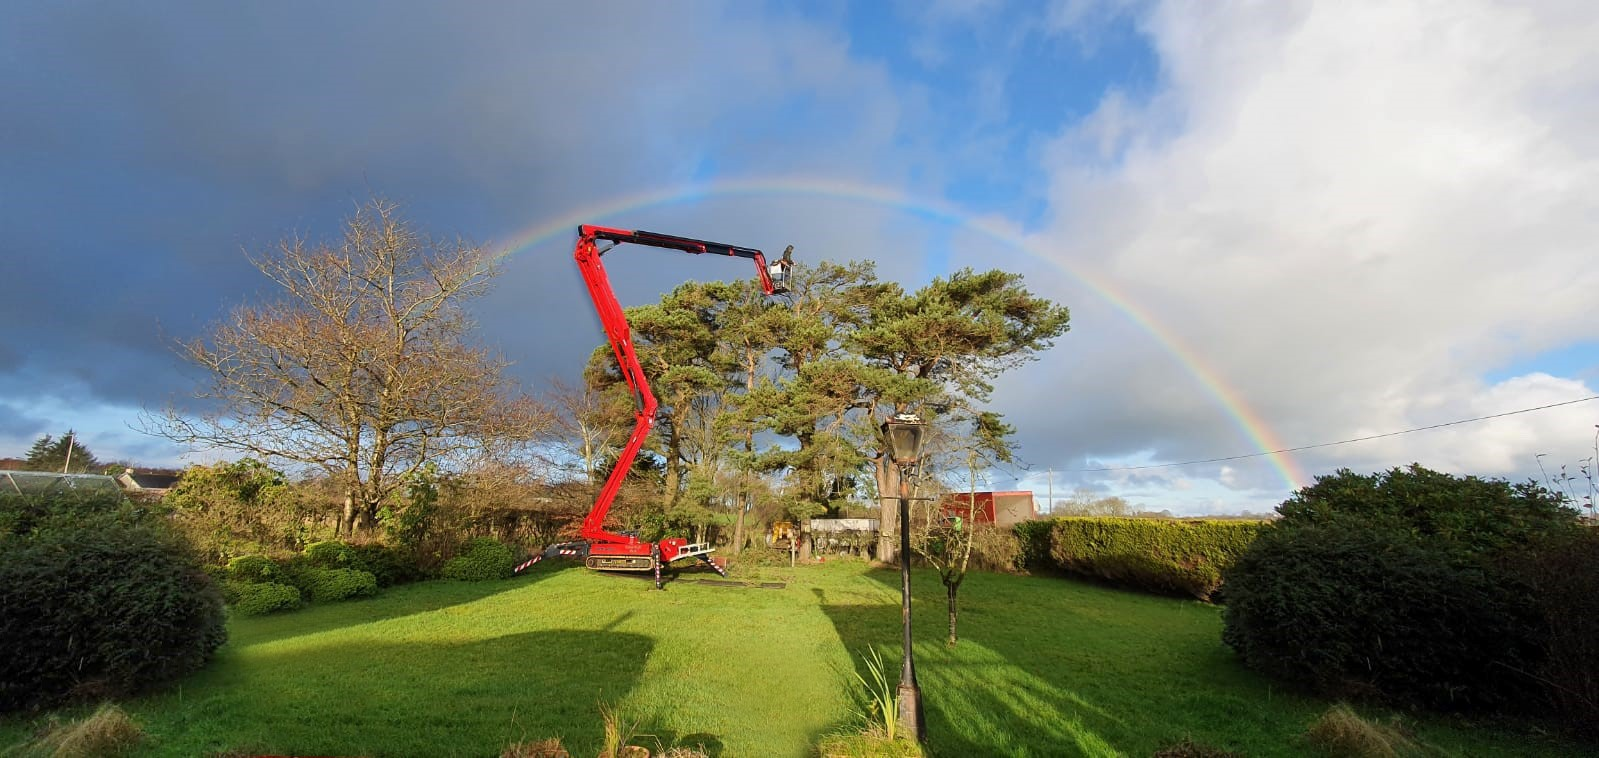 Tree surgeon invests in new Hinowa spider platform – and gets free rainbow